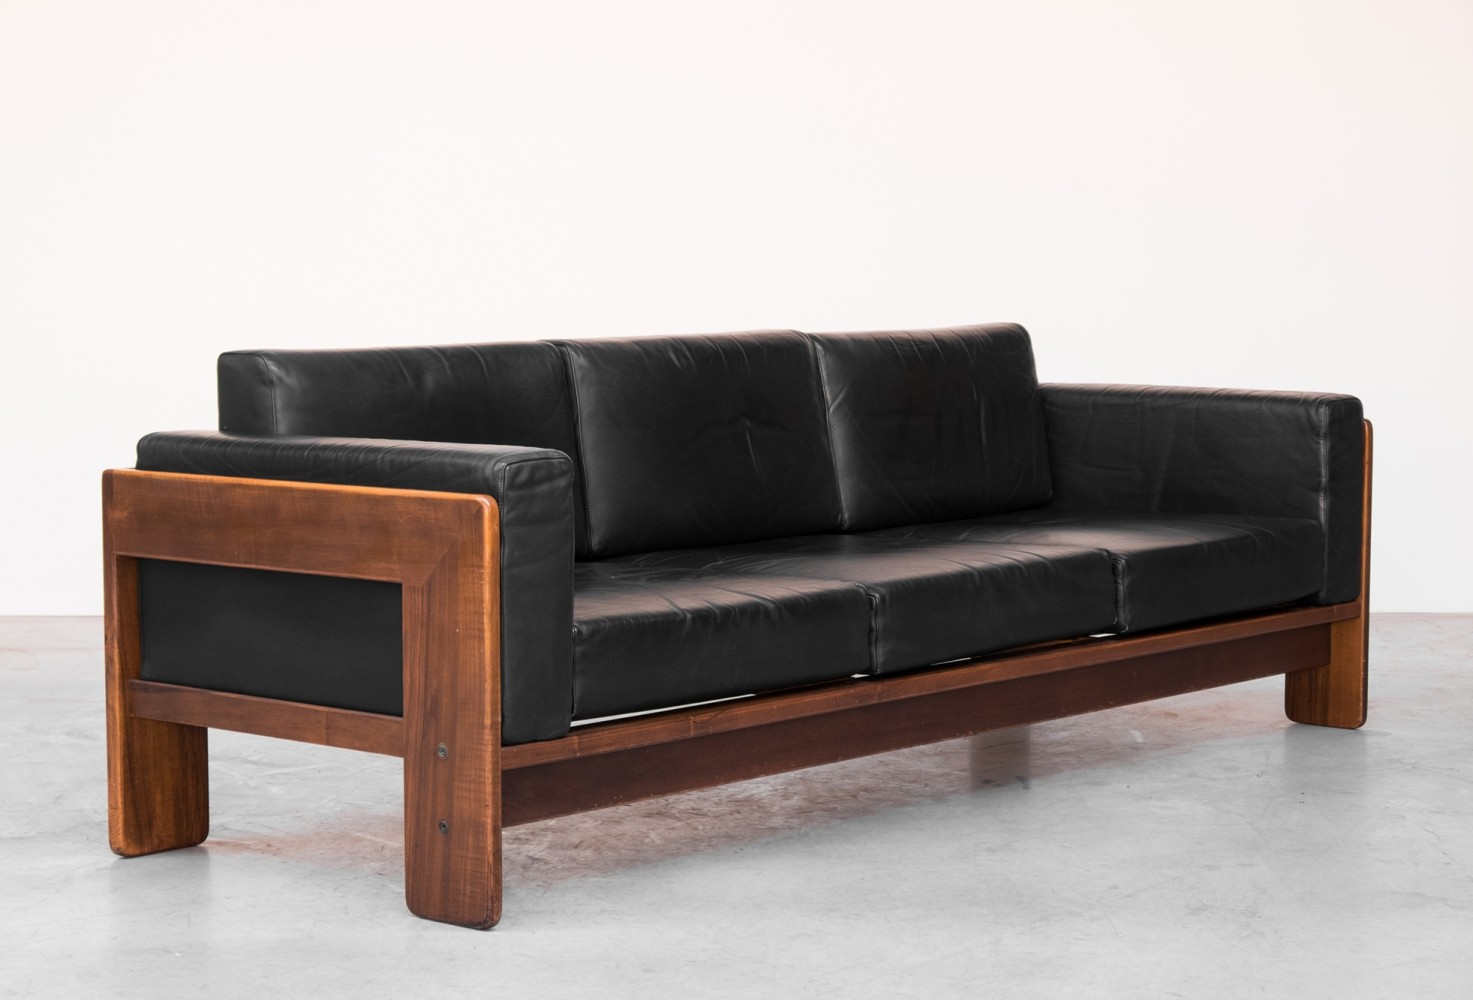 Bastiano three-seater sofa by Tobia Scarpa for Gavina, Italy 1960s